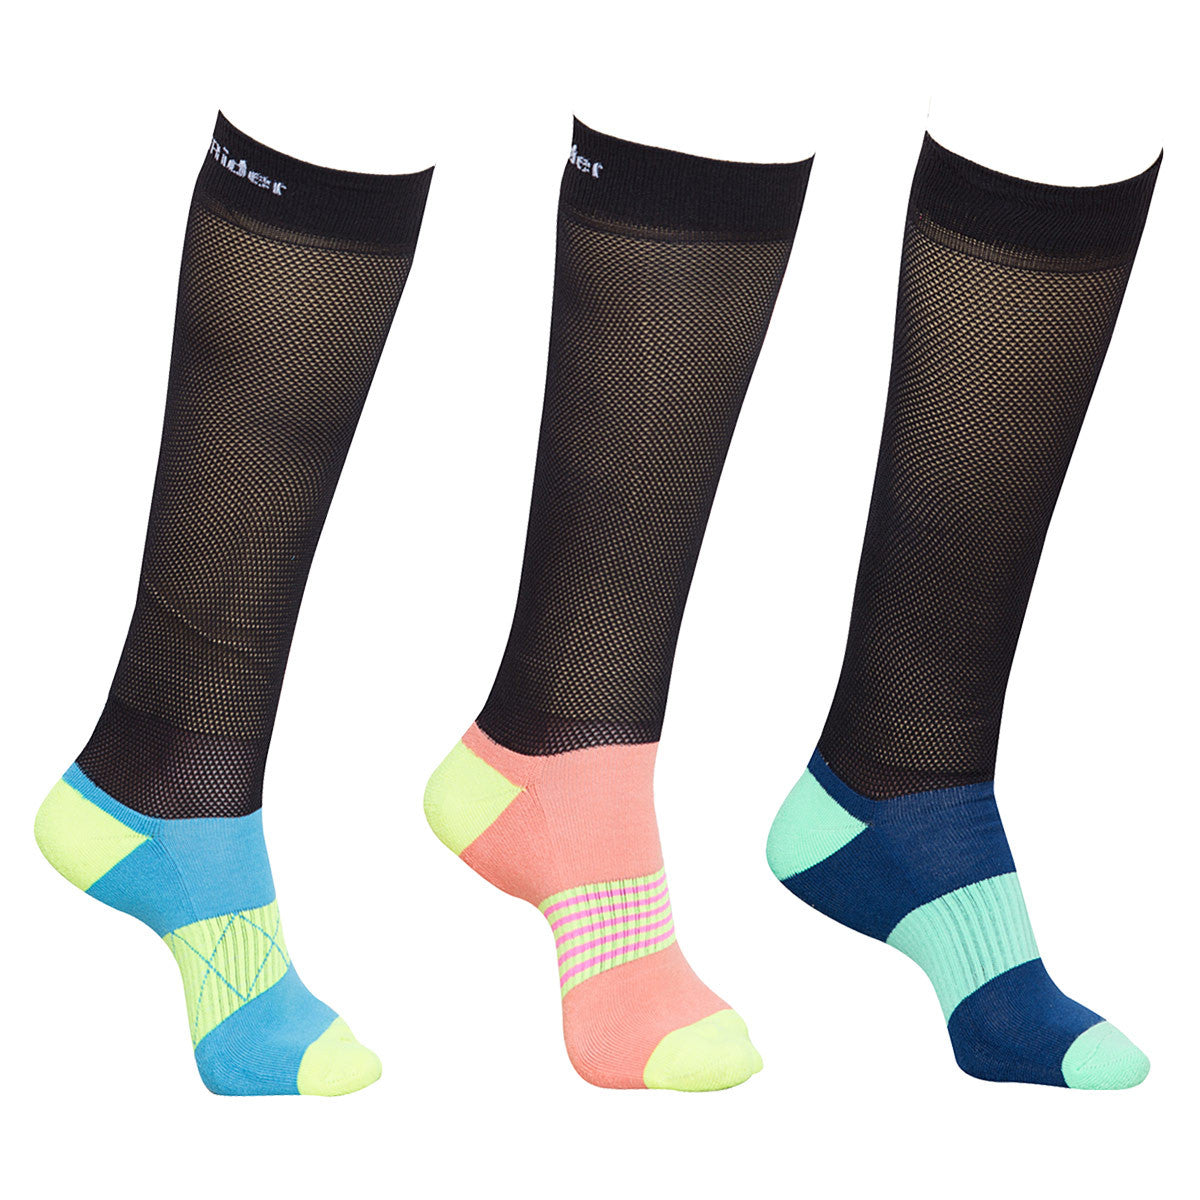 TuffRider EquiCool Ventilated Riding Socks-3 pack - Breeches.com